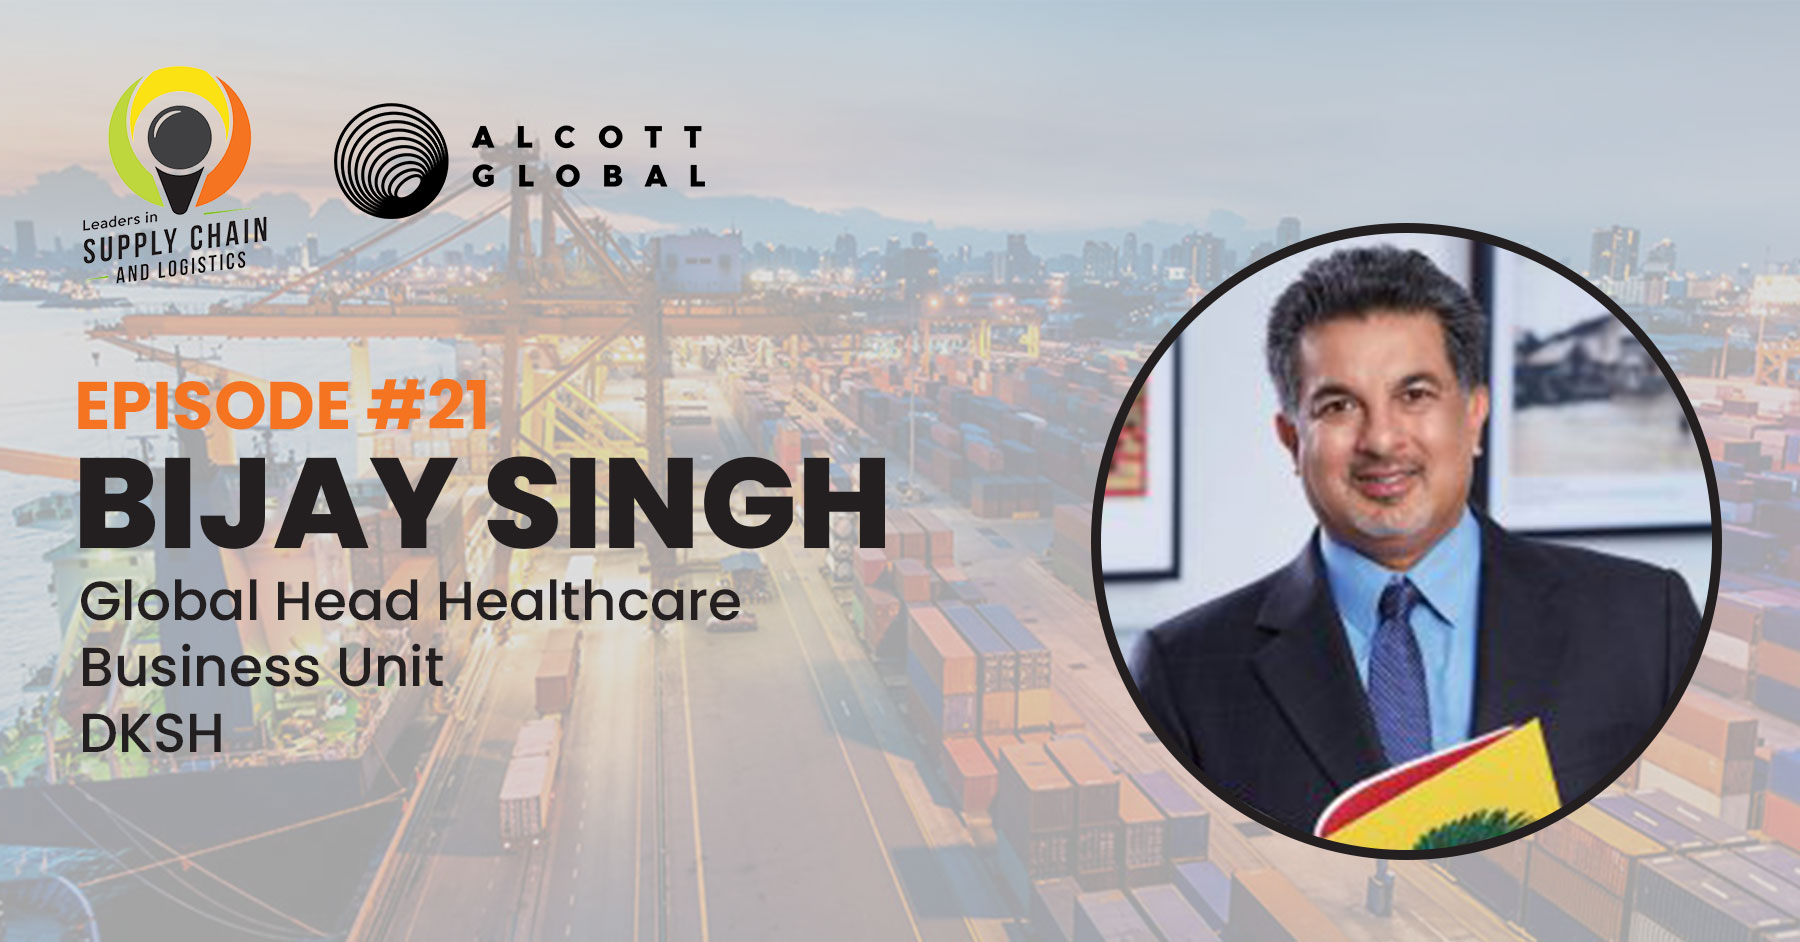 #21: Bijay Singh Global Head Healthcare Business Unit at DKSH Featured Image